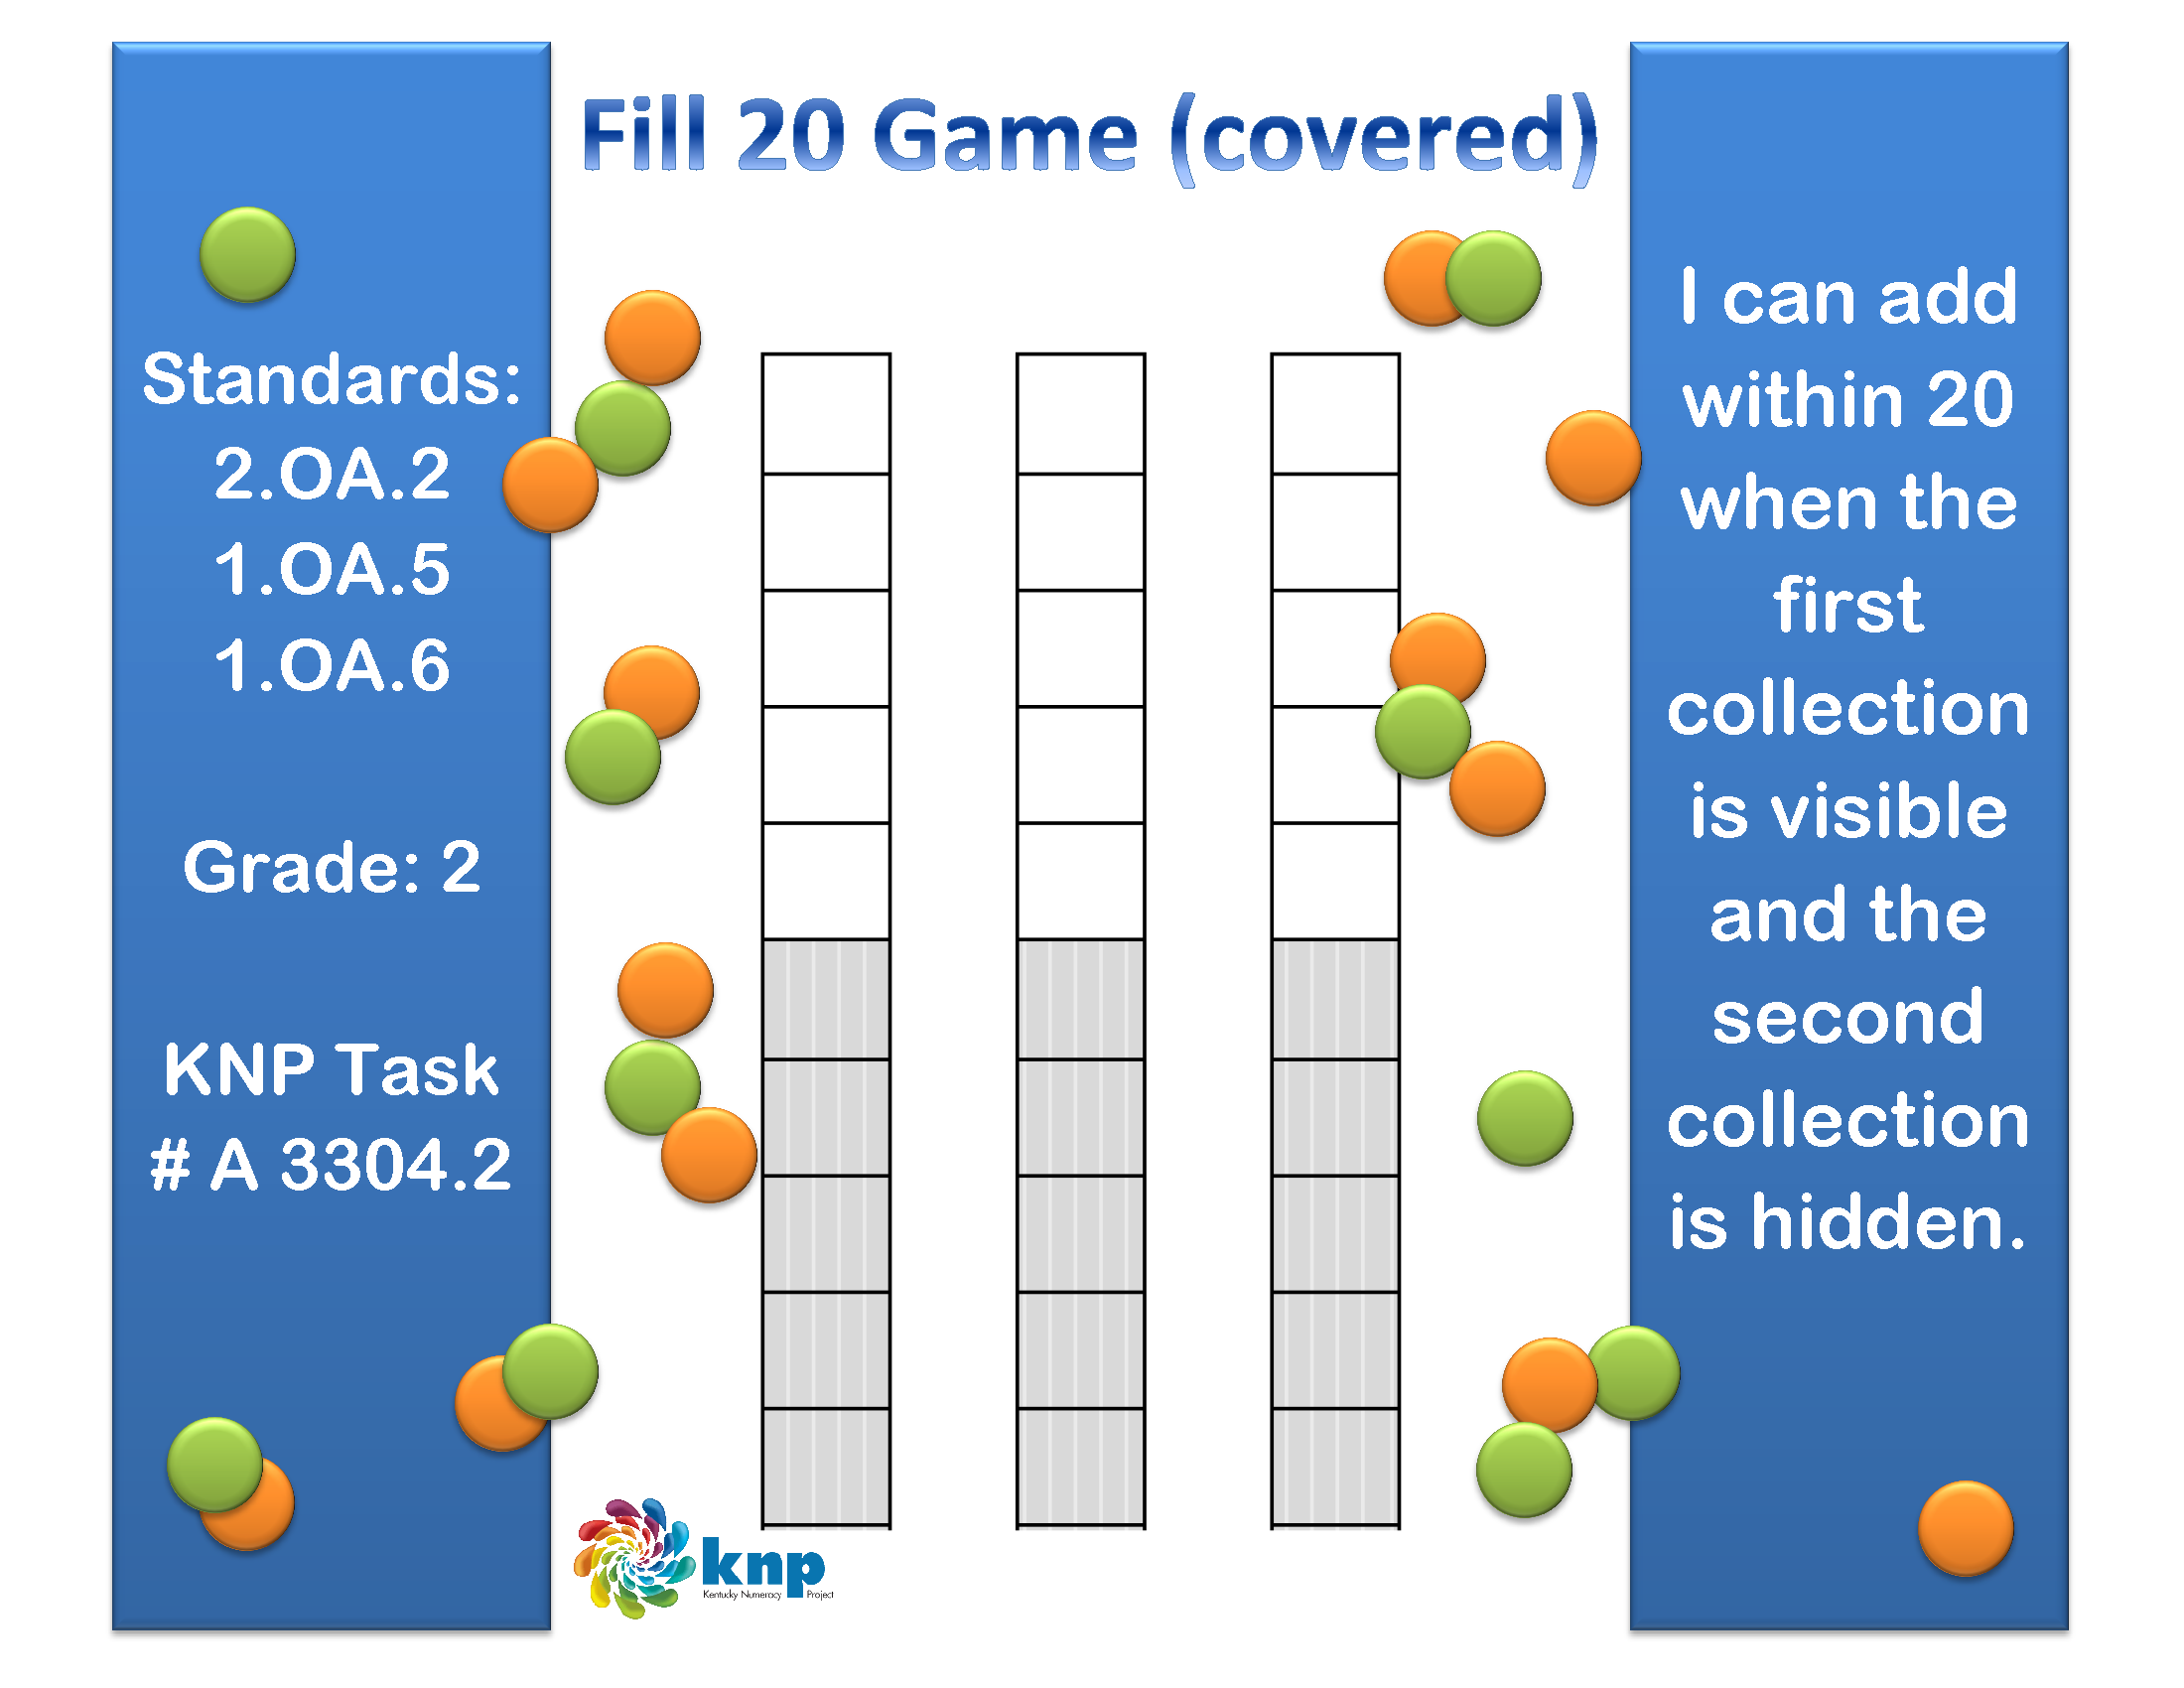 Fill 20 Game Covered